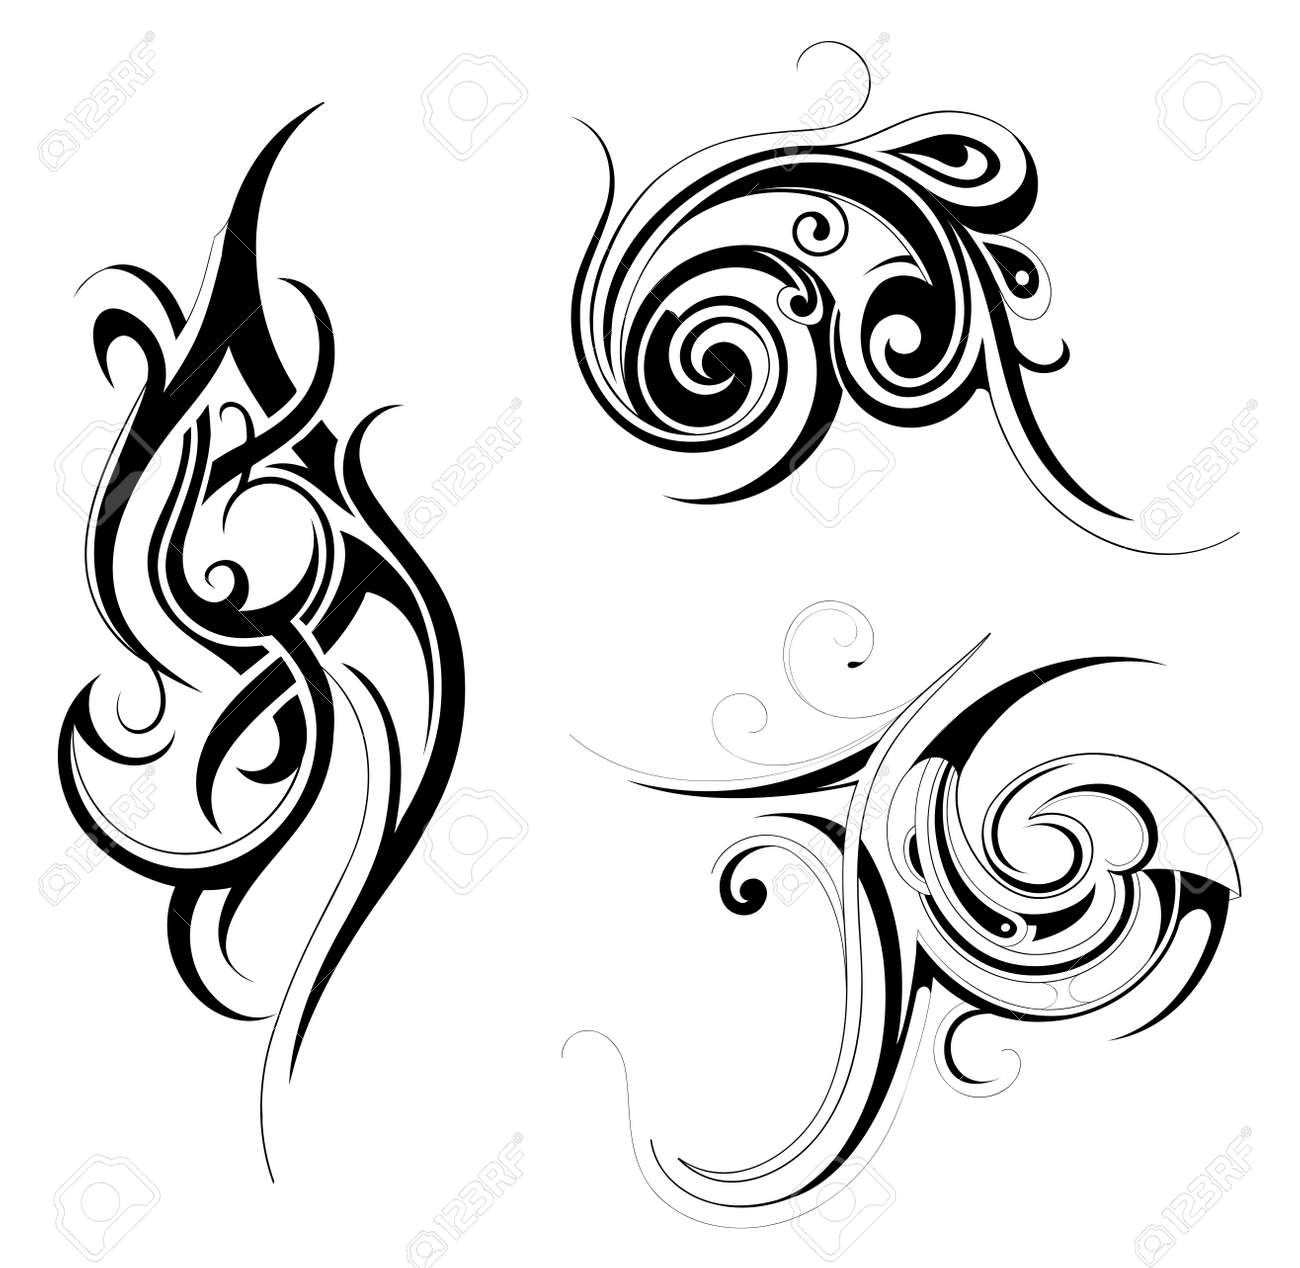 Set of various tribal art tattoo ornaments isolated on white - 25516566